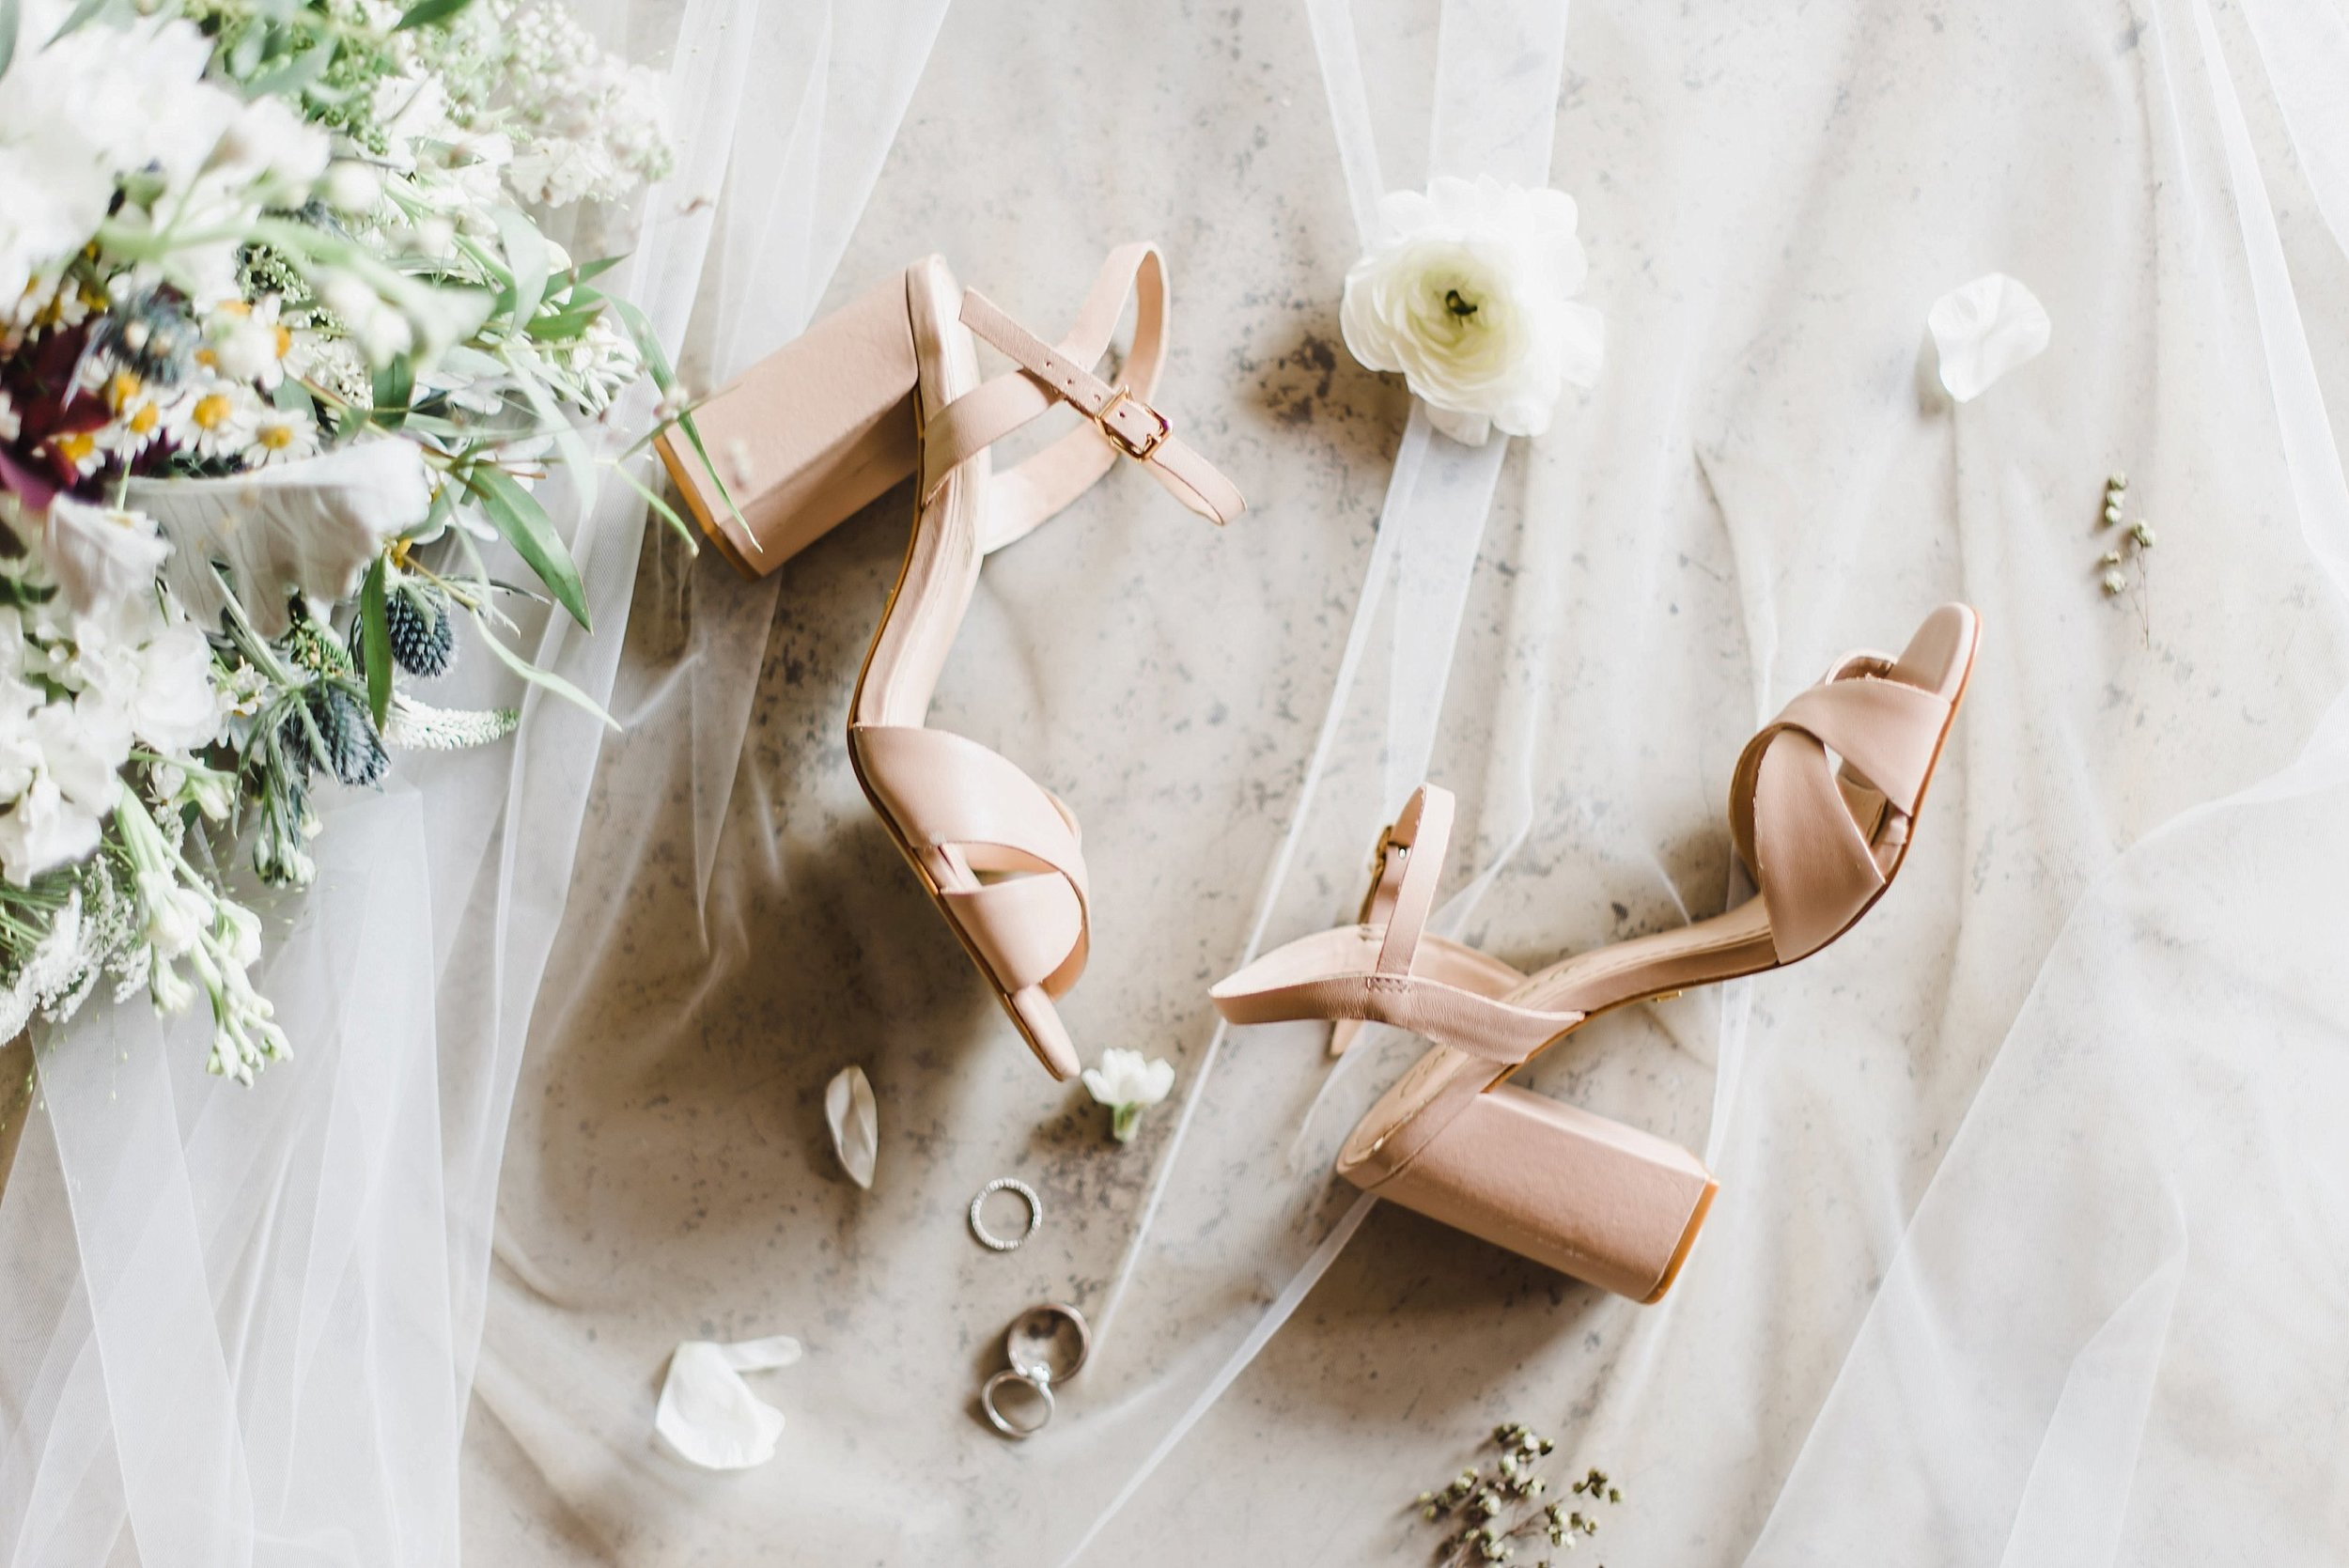 We had ample time to capture details of Becca's wedding attire, so this gave me the chance to get more creative and think outside the box!